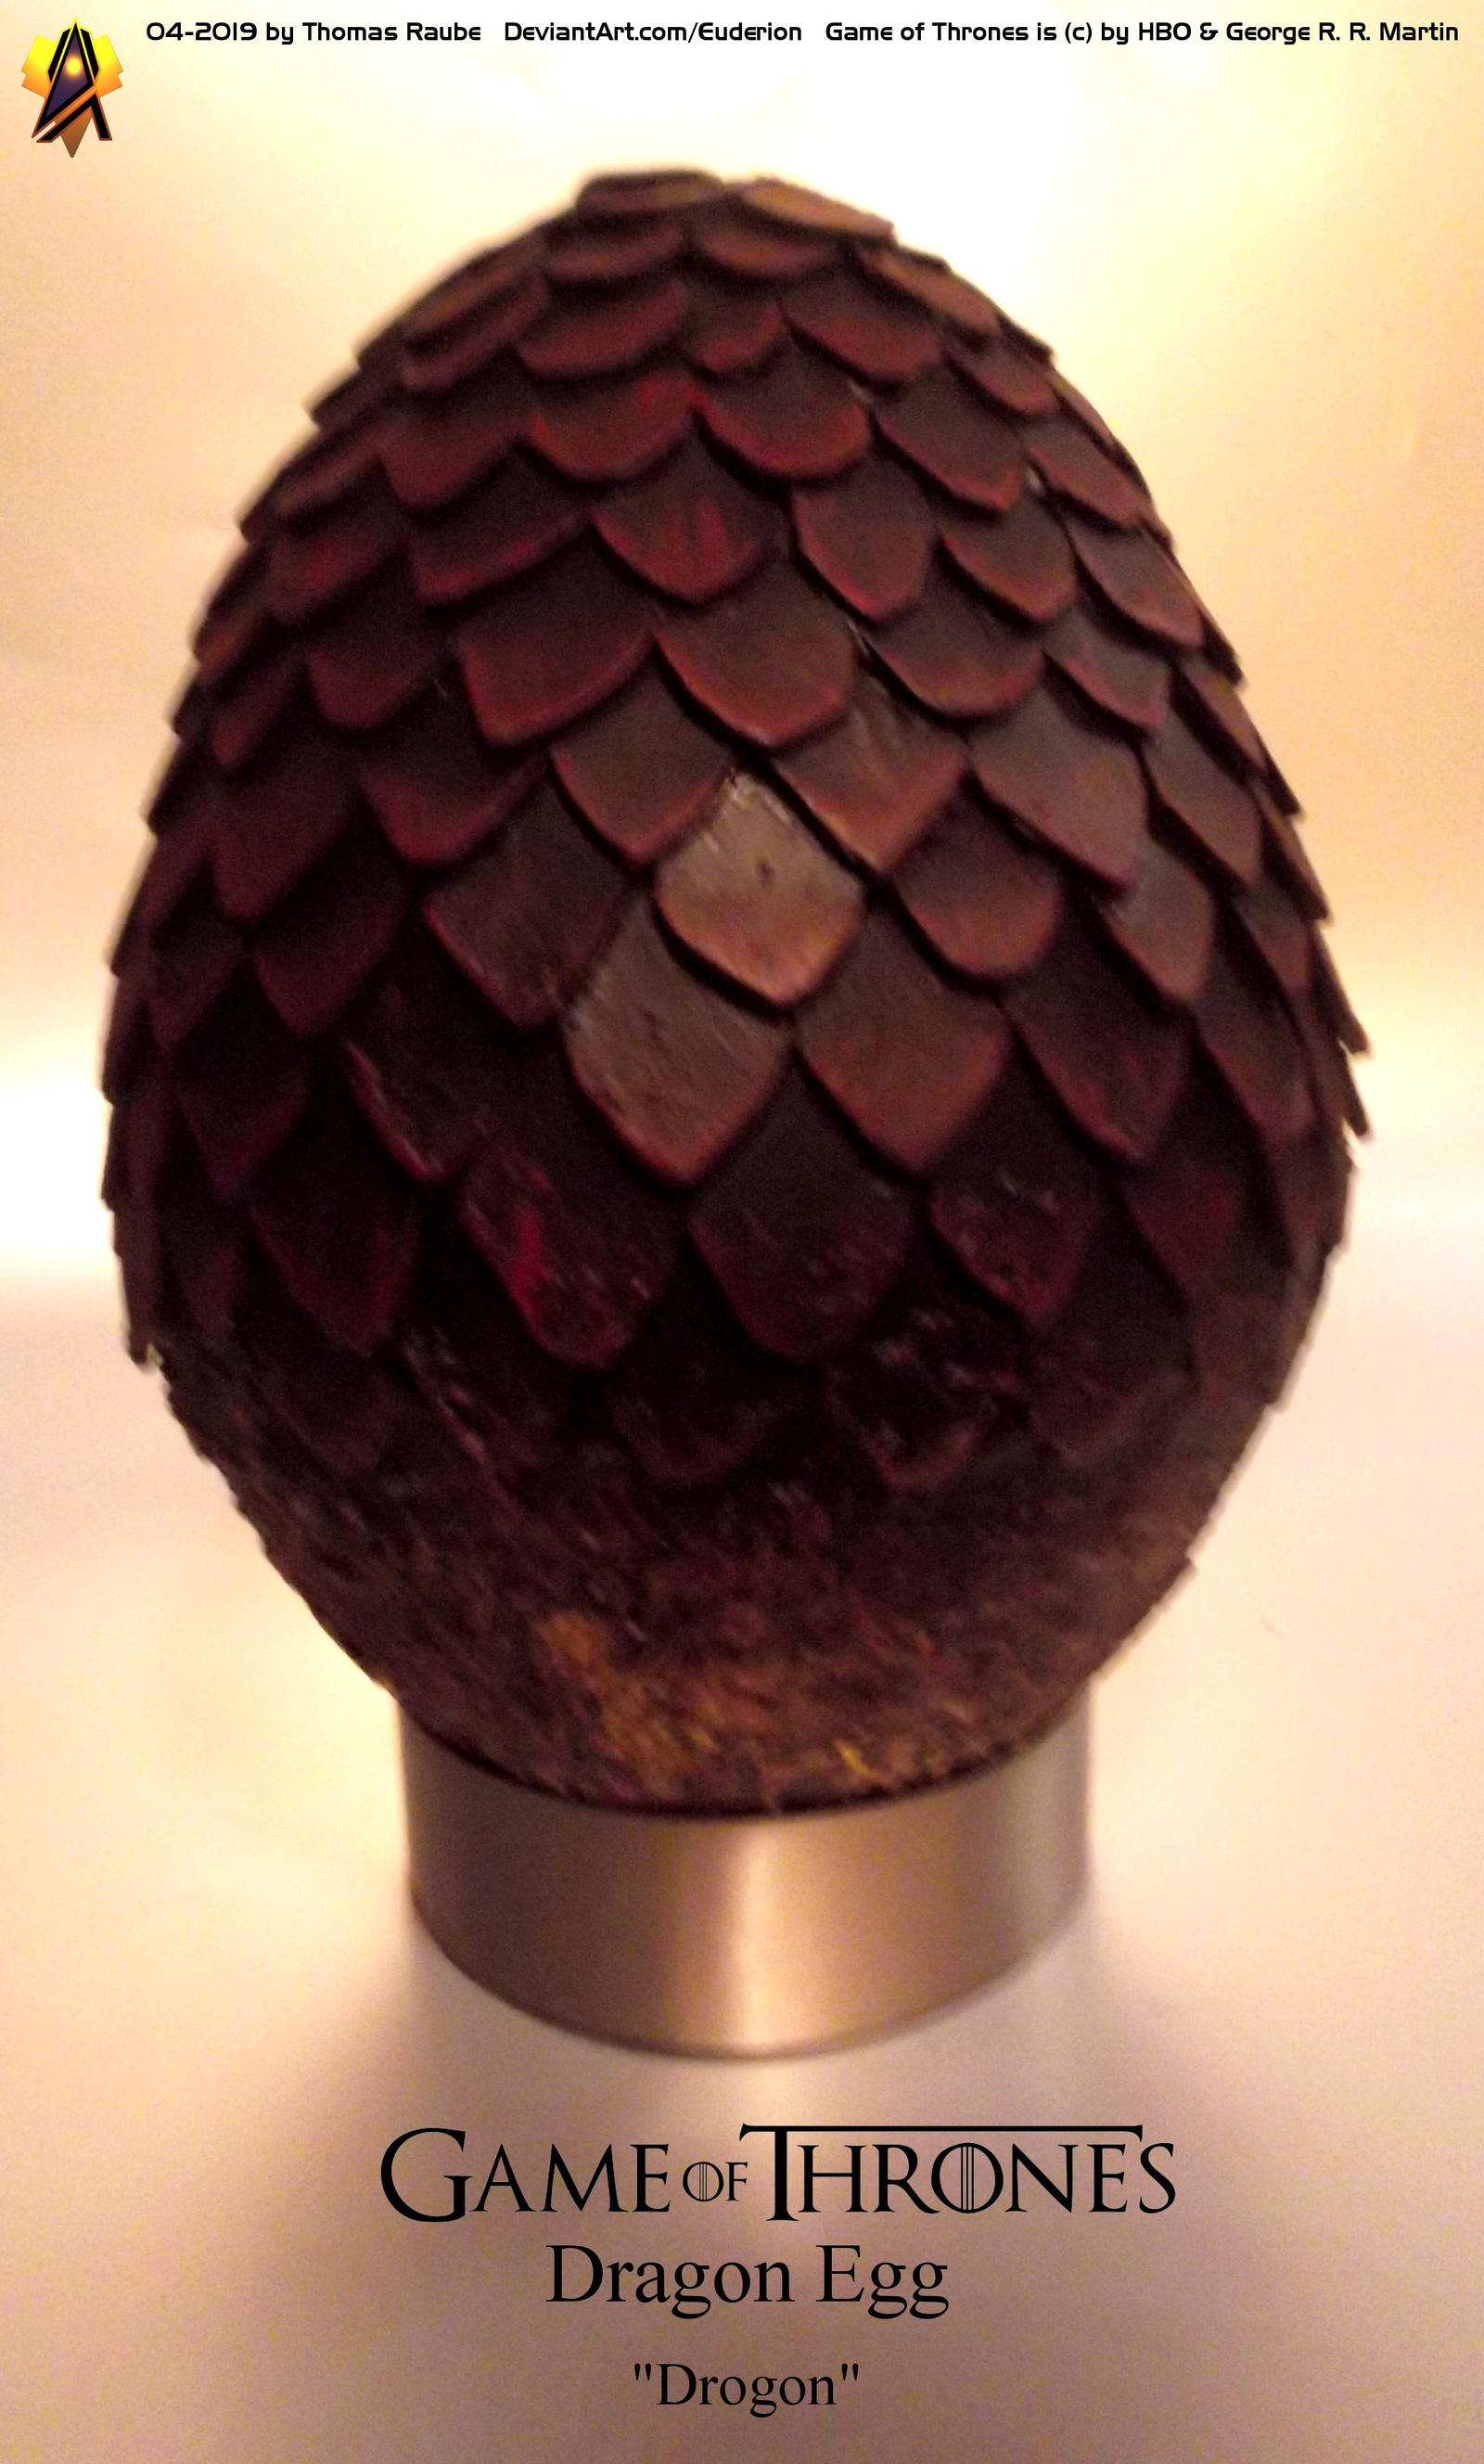 Game of Thrones Dragon Egg Prop Drogon by Euderion on DeviantArt